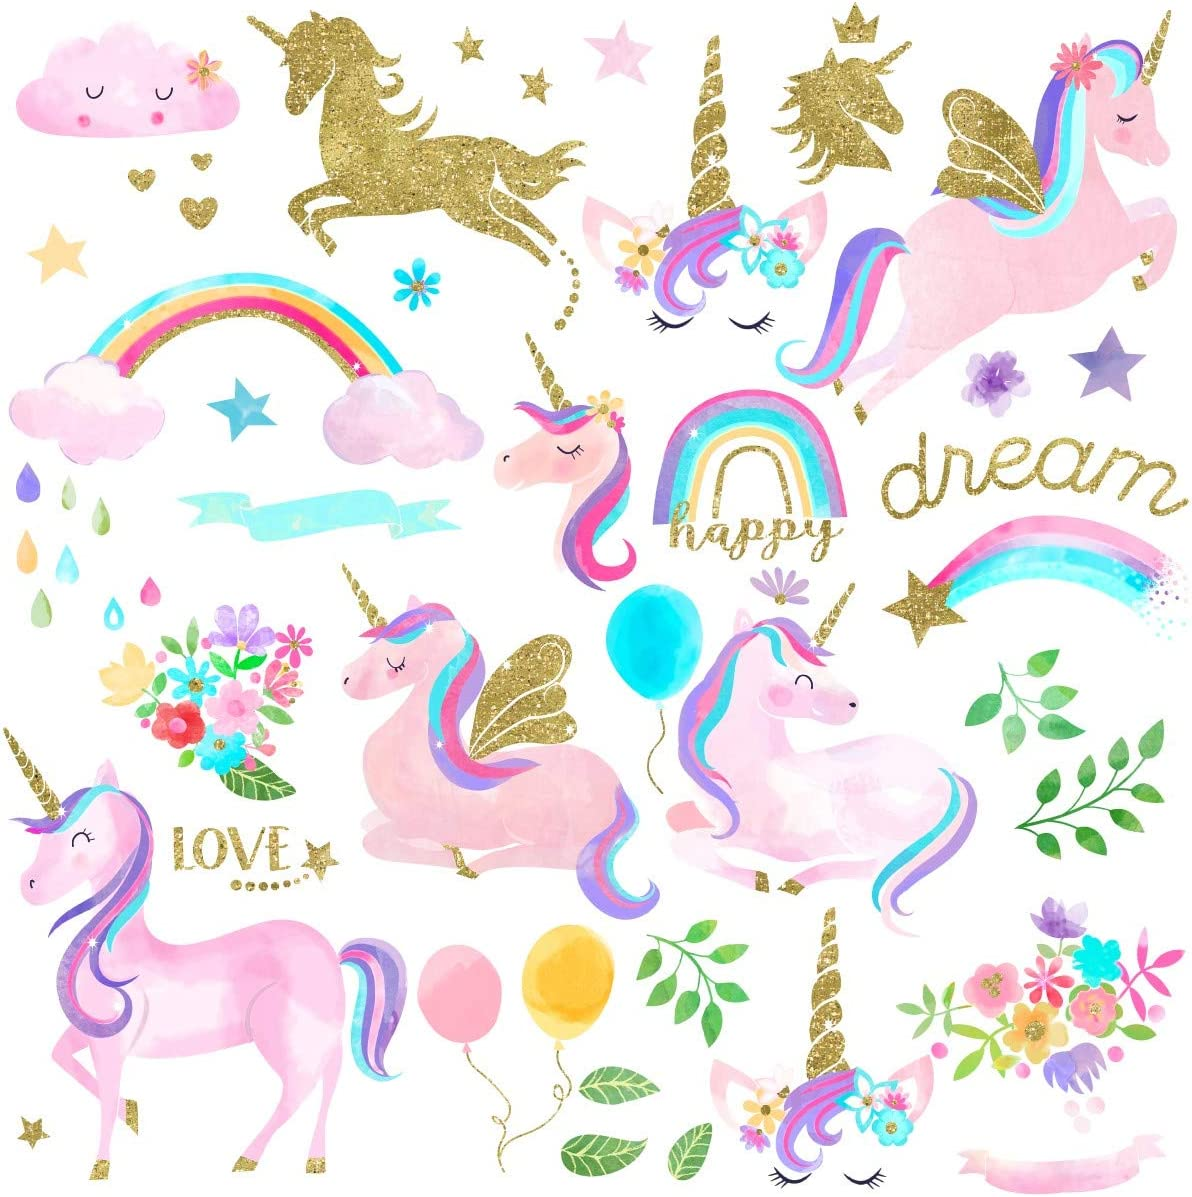 Watercolor Magical Unicorn Peel and Stick Wall Art Sticker Decals for Girls Room Nursery Parties